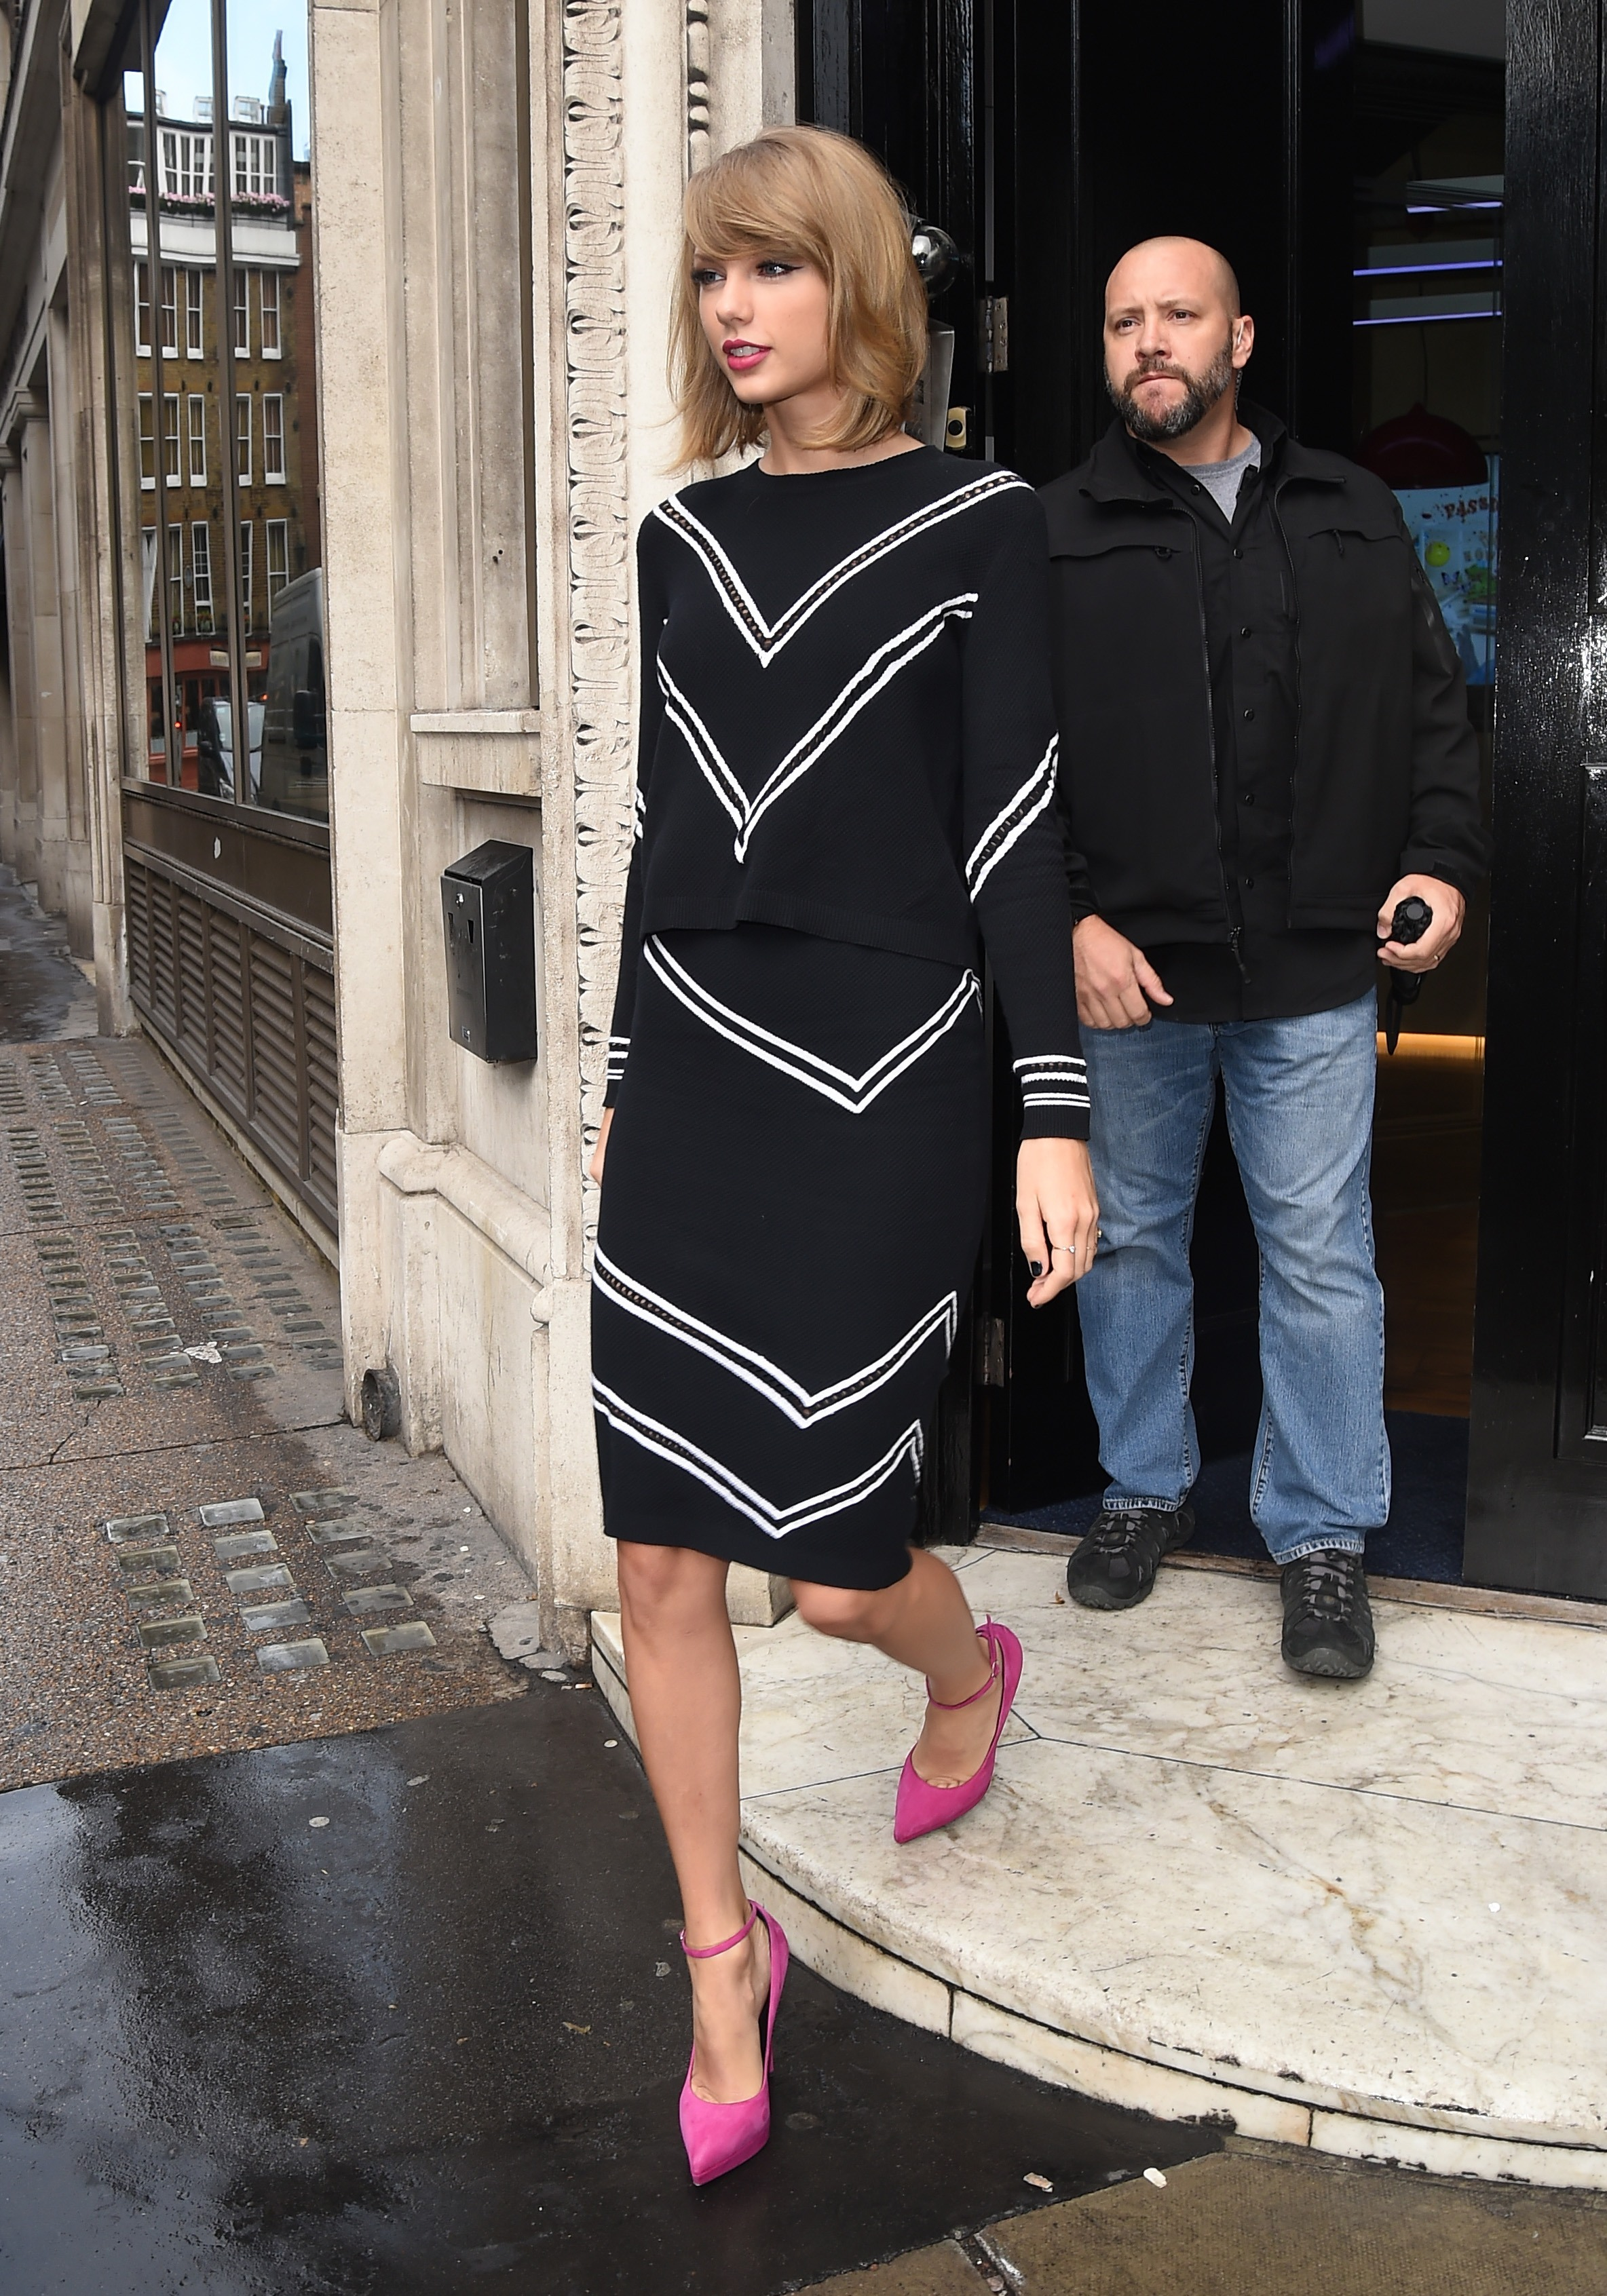 http://taylorpictures.net/albums/candids/2014/10-8leavingbbcradio2/012.jpg